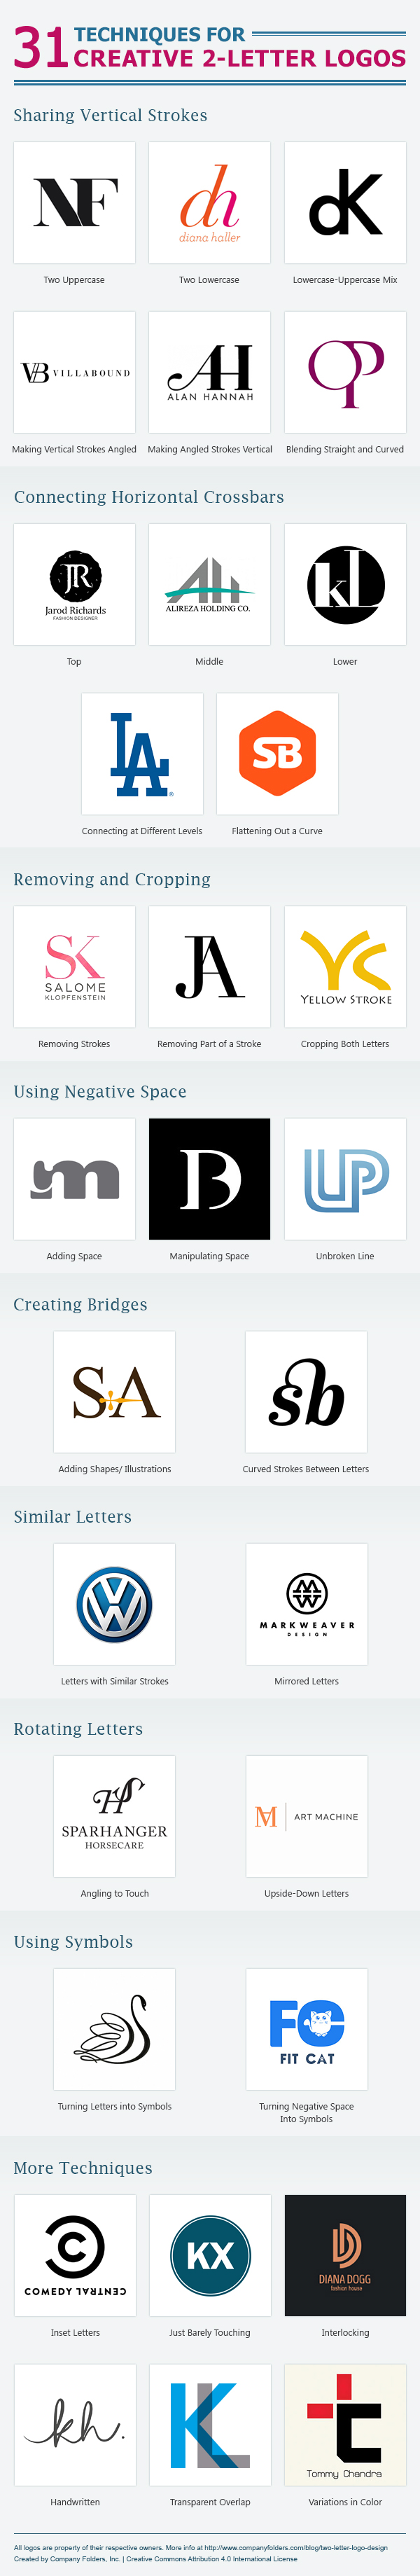 31 Design Techniques For Creative Two-Letter Logos